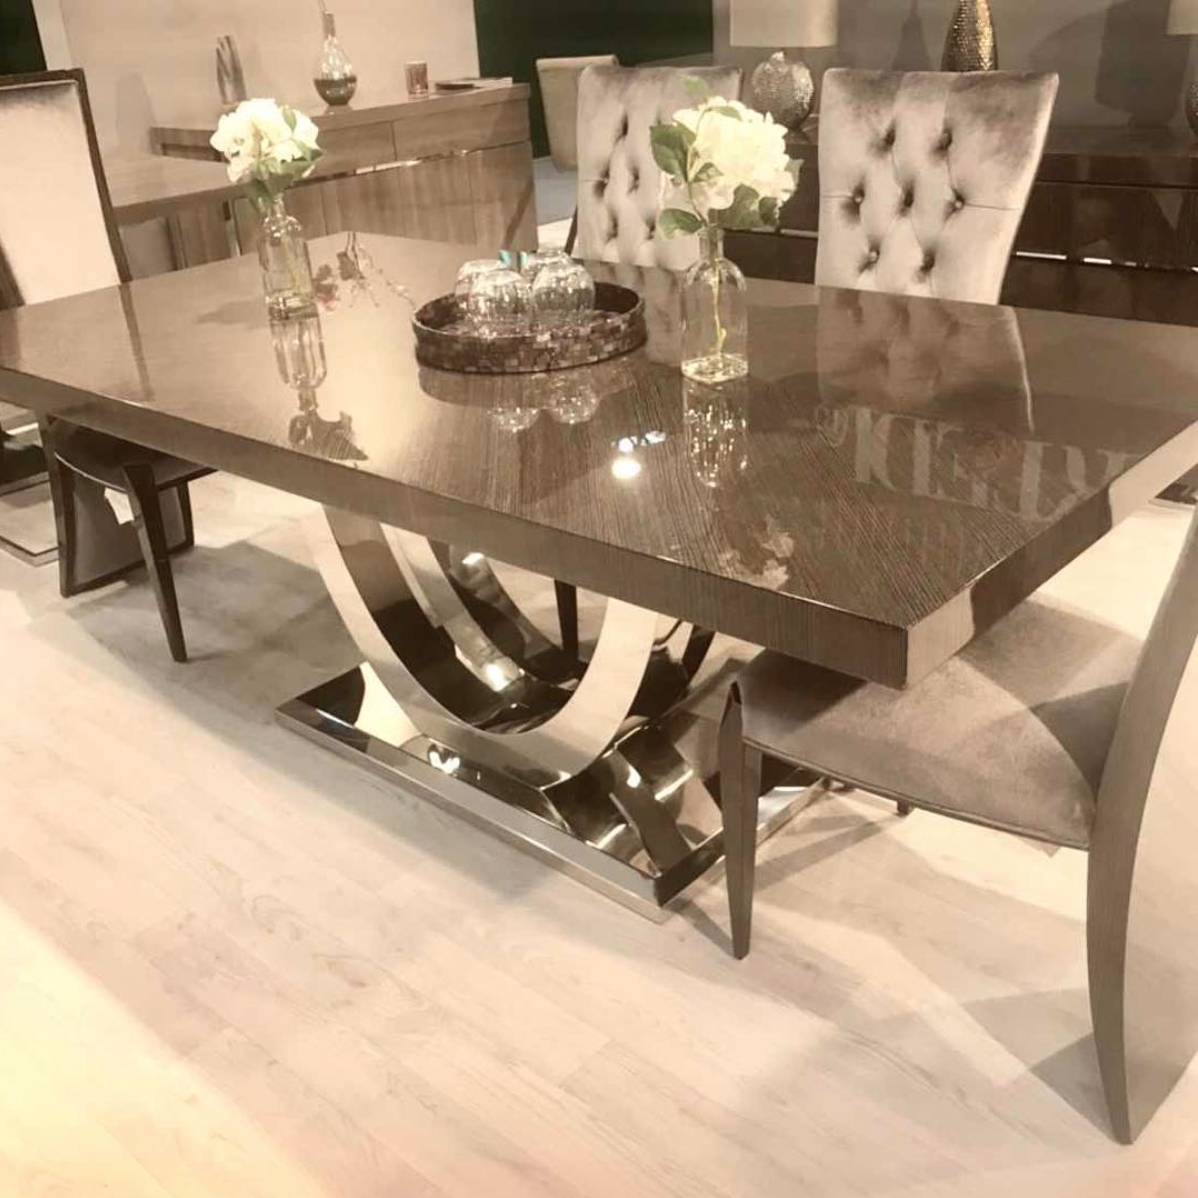 High Gloss Dining Table With Chrome Base In Widely Used High Gloss Dining Room Furniture (View 22 of 25)